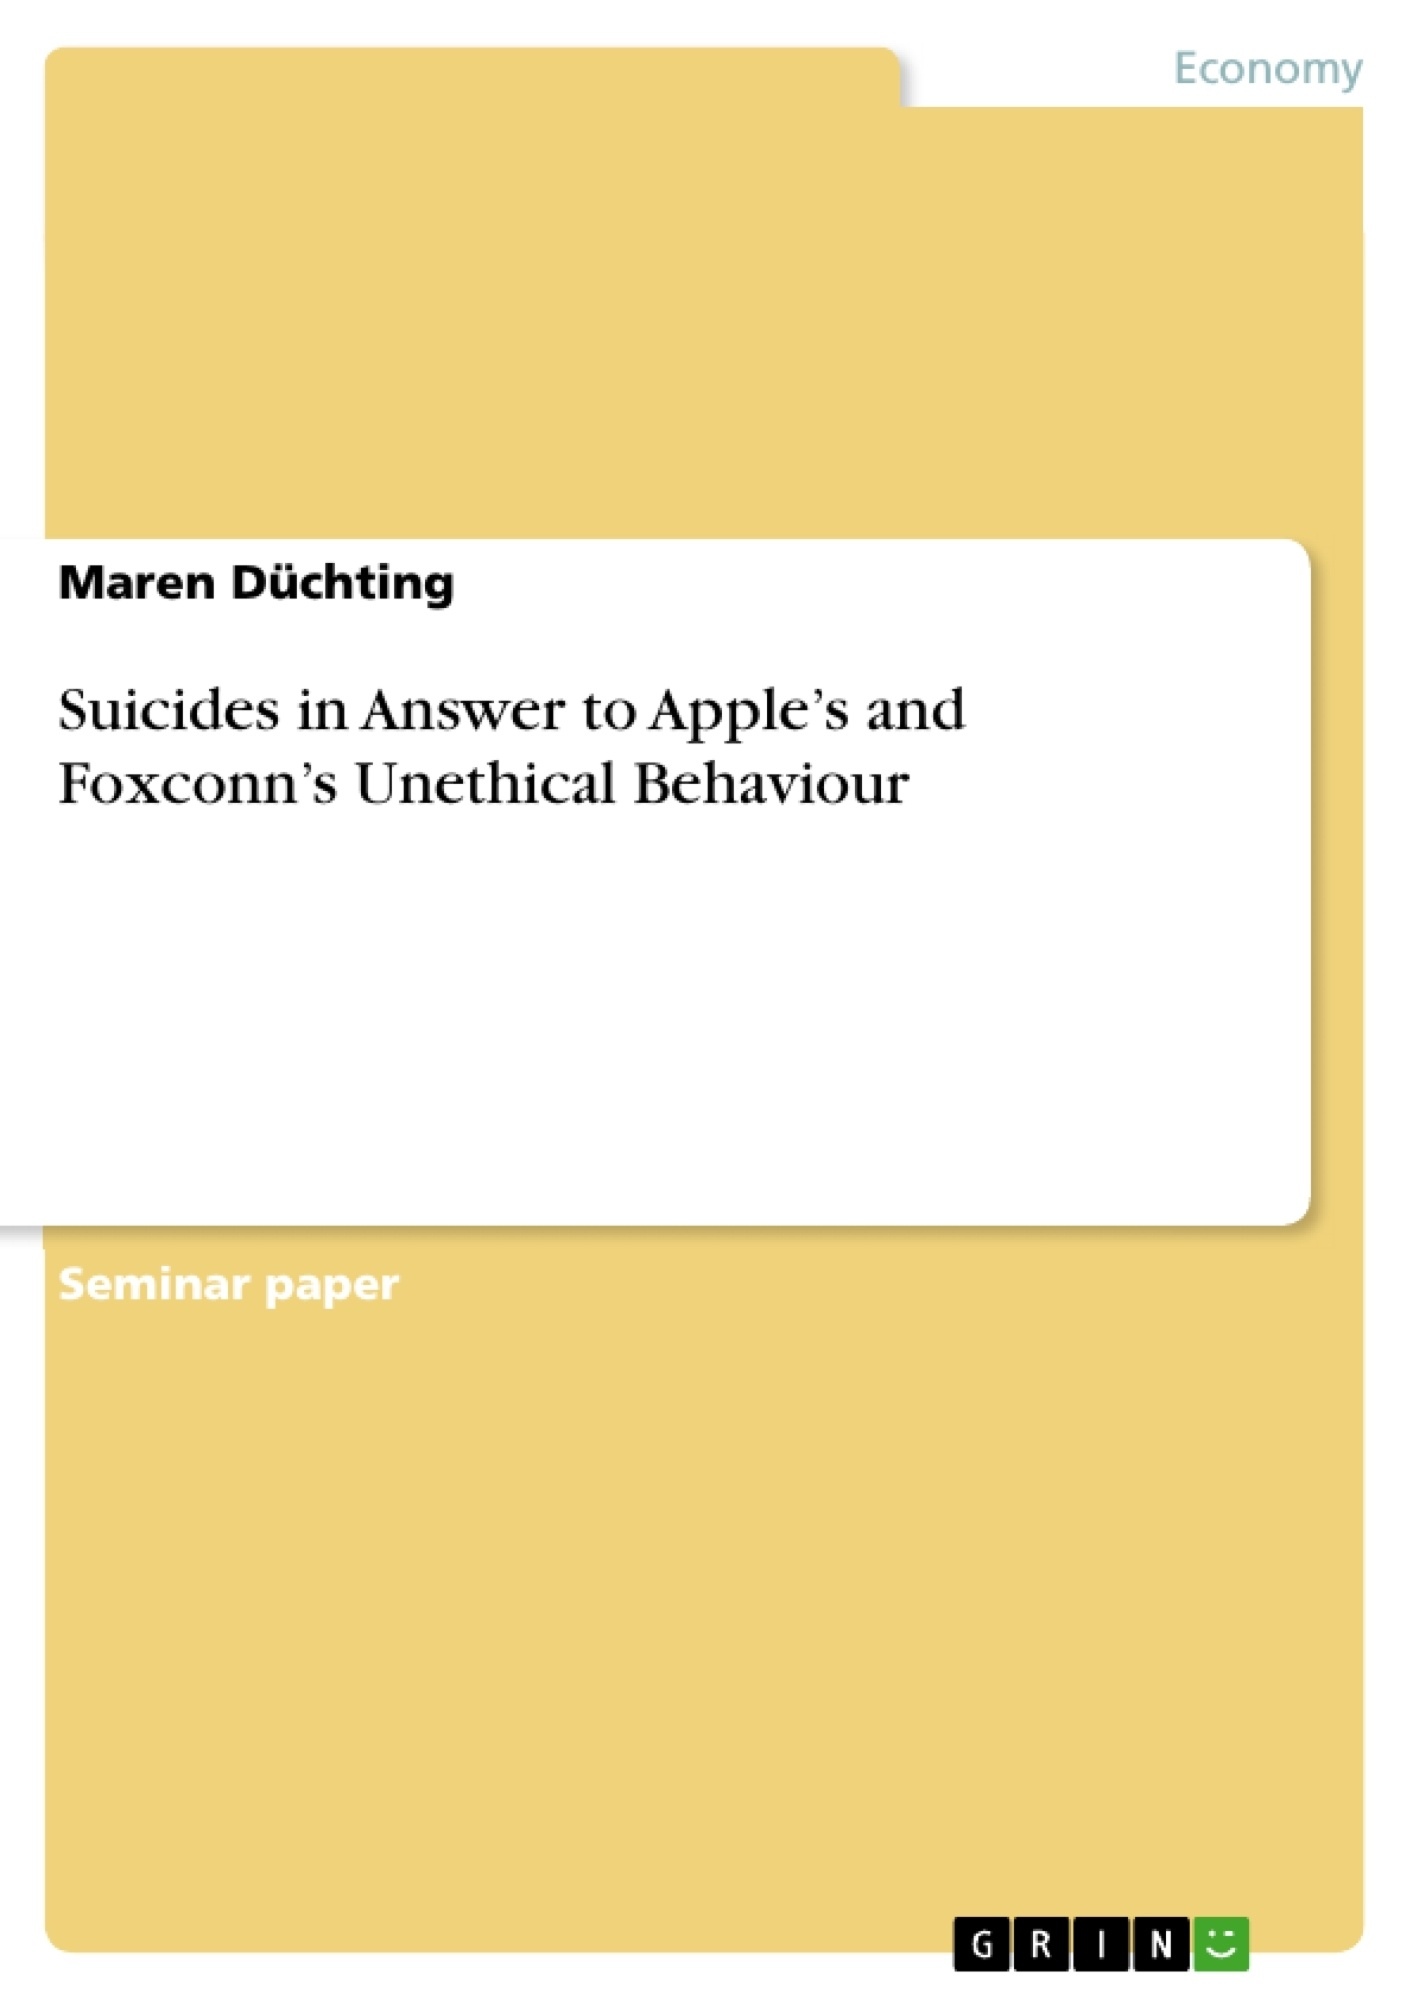 Title: Suicides in Answer to Apple's and Foxconn's Unethical Behaviour